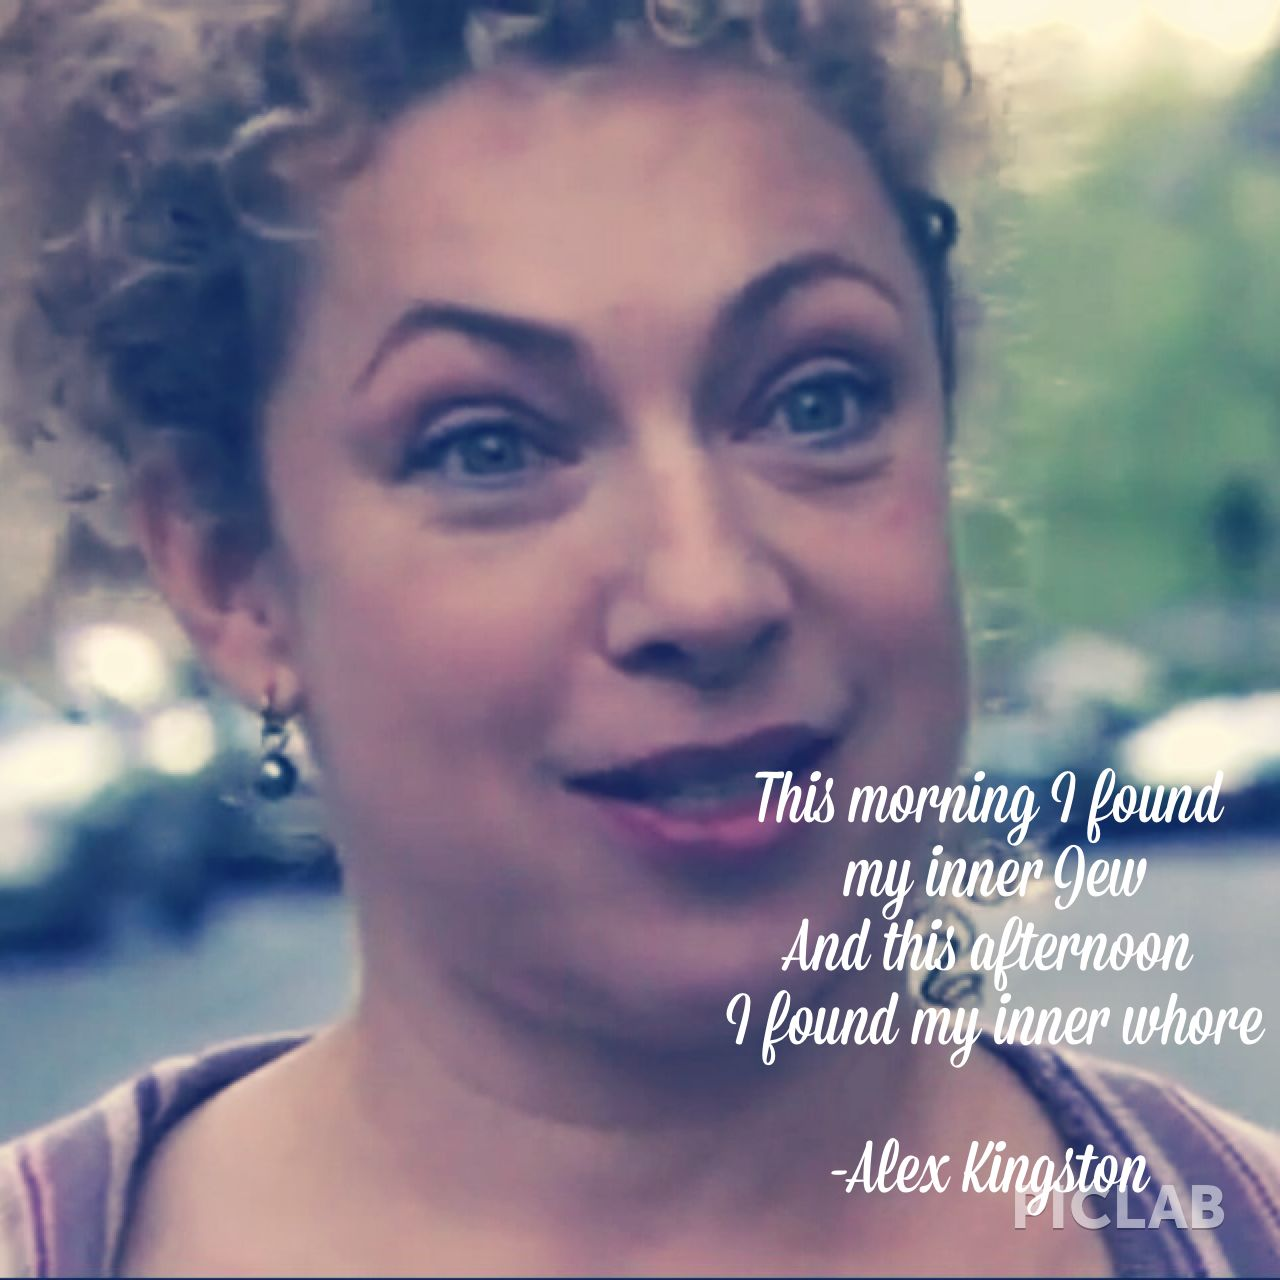 """""""This morning I found my inner Jew, and this after noon I found my inner whore"""" direct quote -Alex Kingston"""